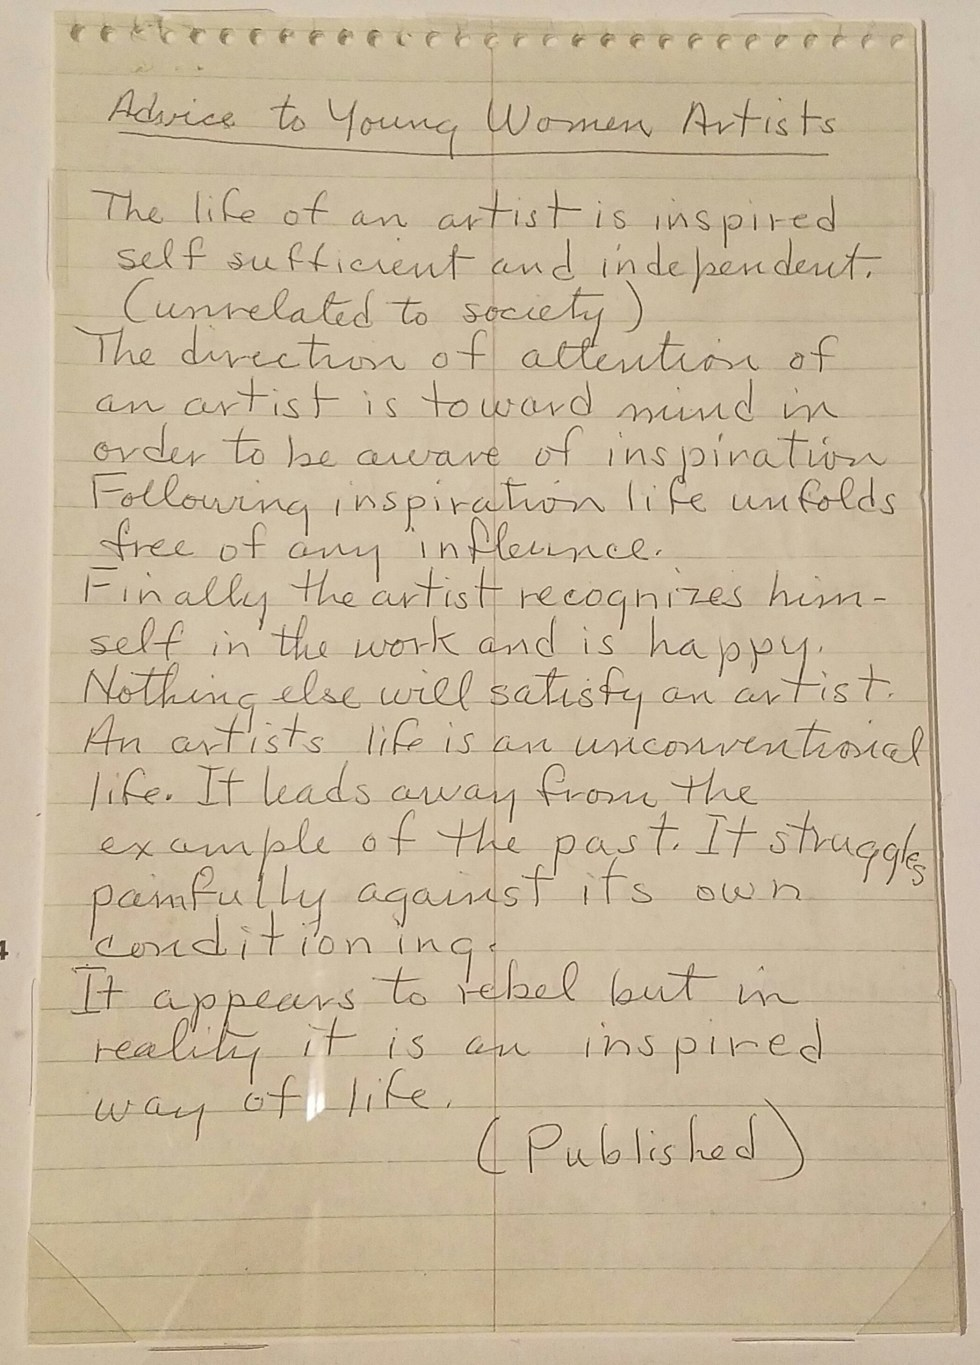 advice-to-young-women-artists-agnes-martin